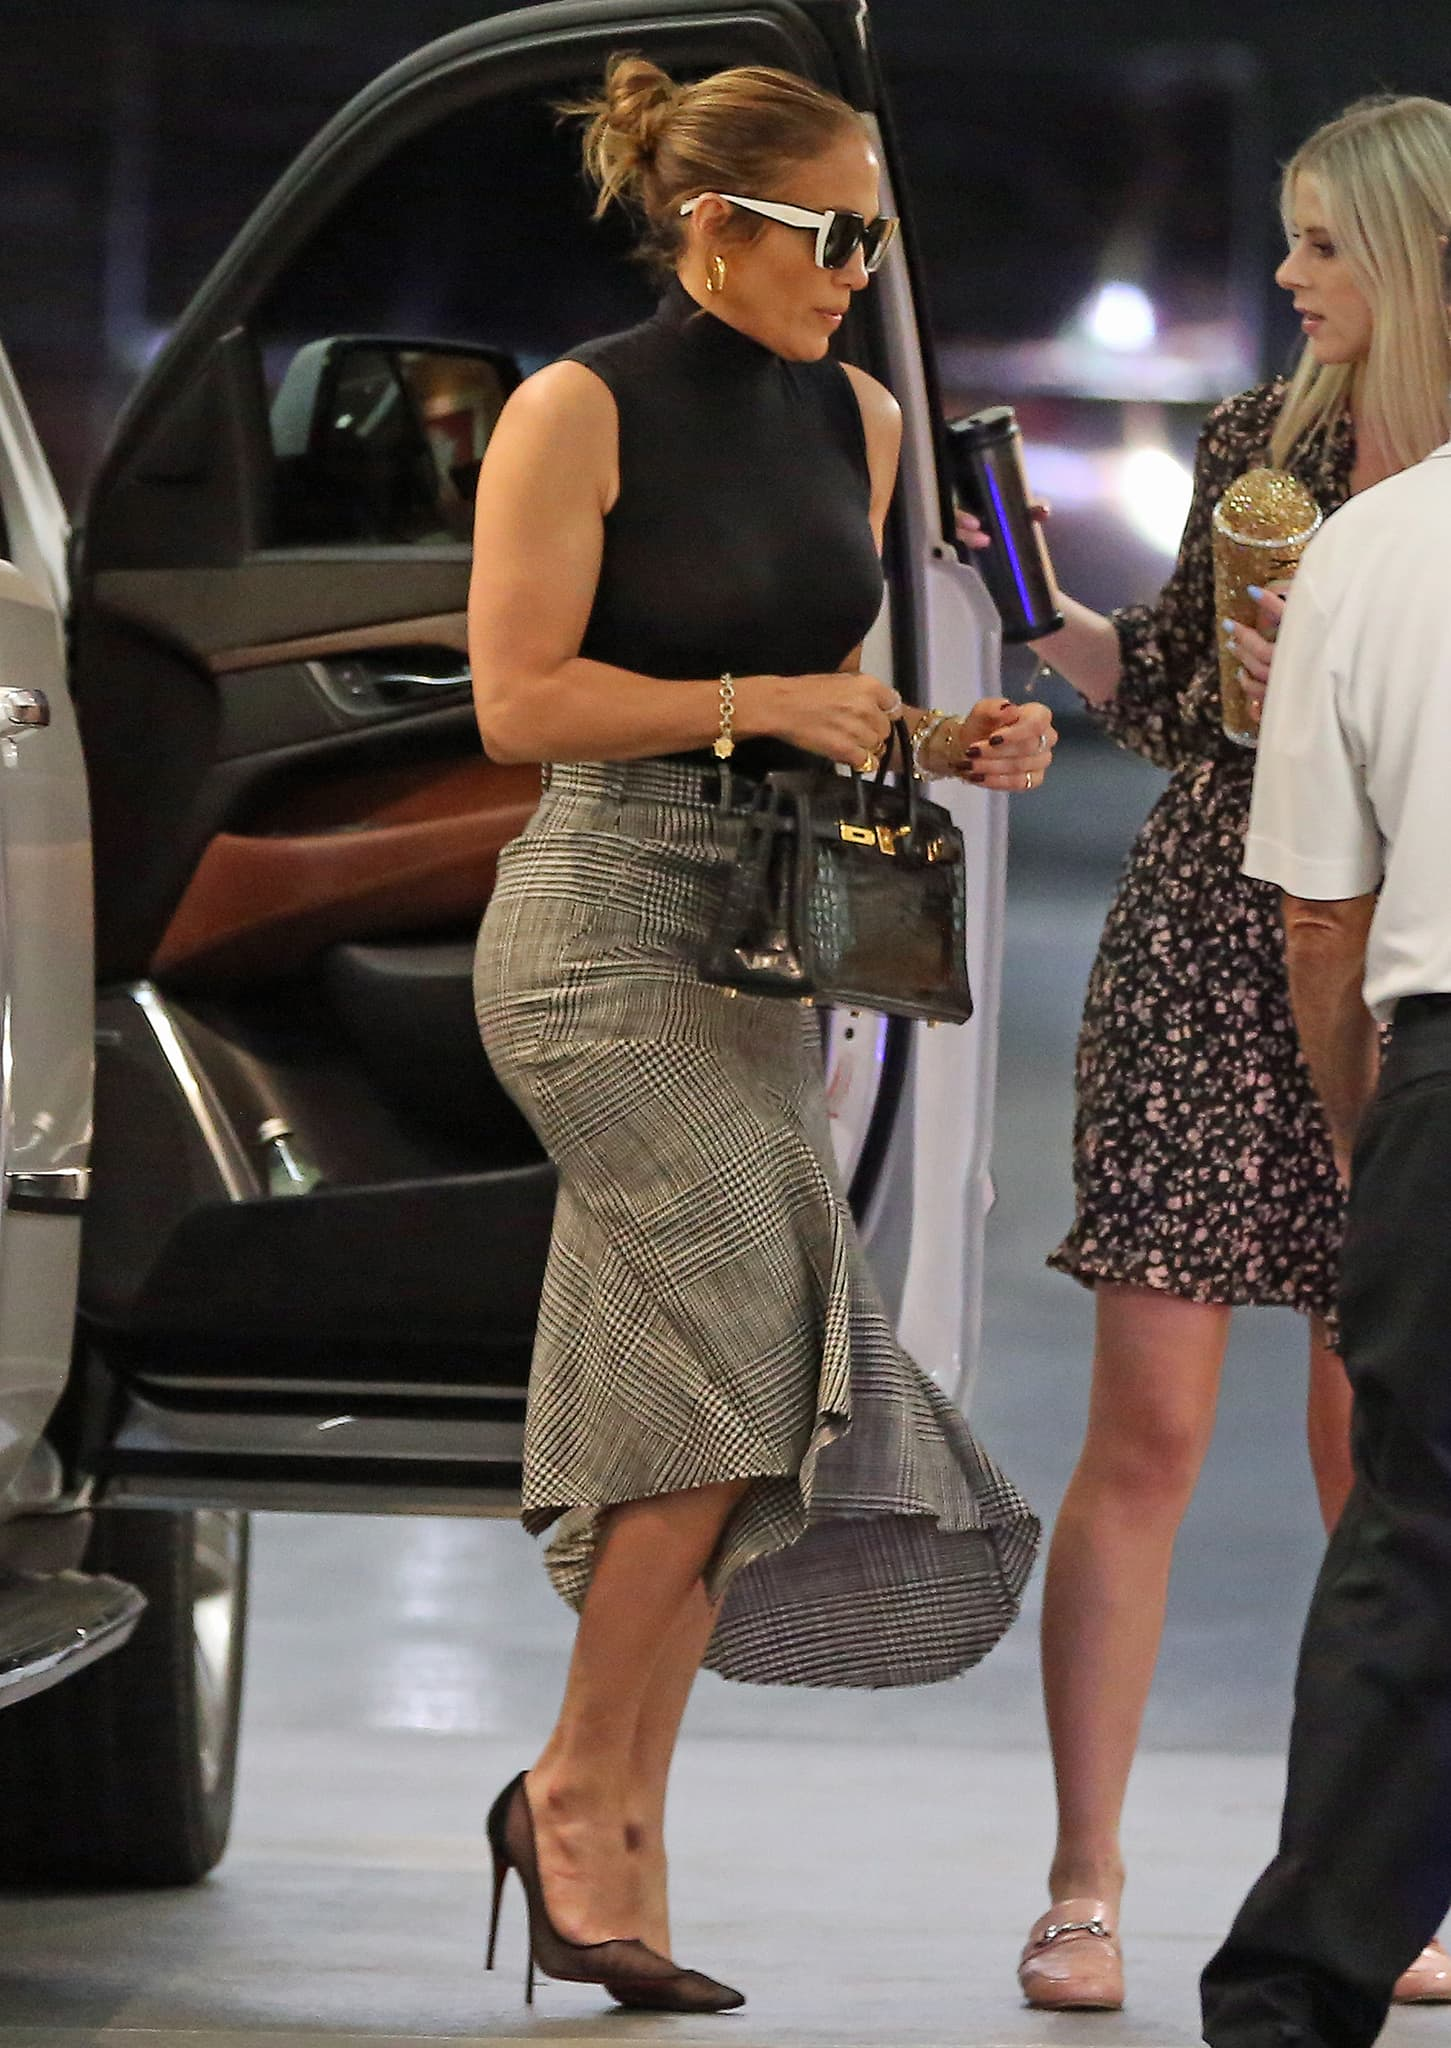 Jennifer Lopez is sophisticated in her Tom Ford plaid skirt and Wolford bodysuit